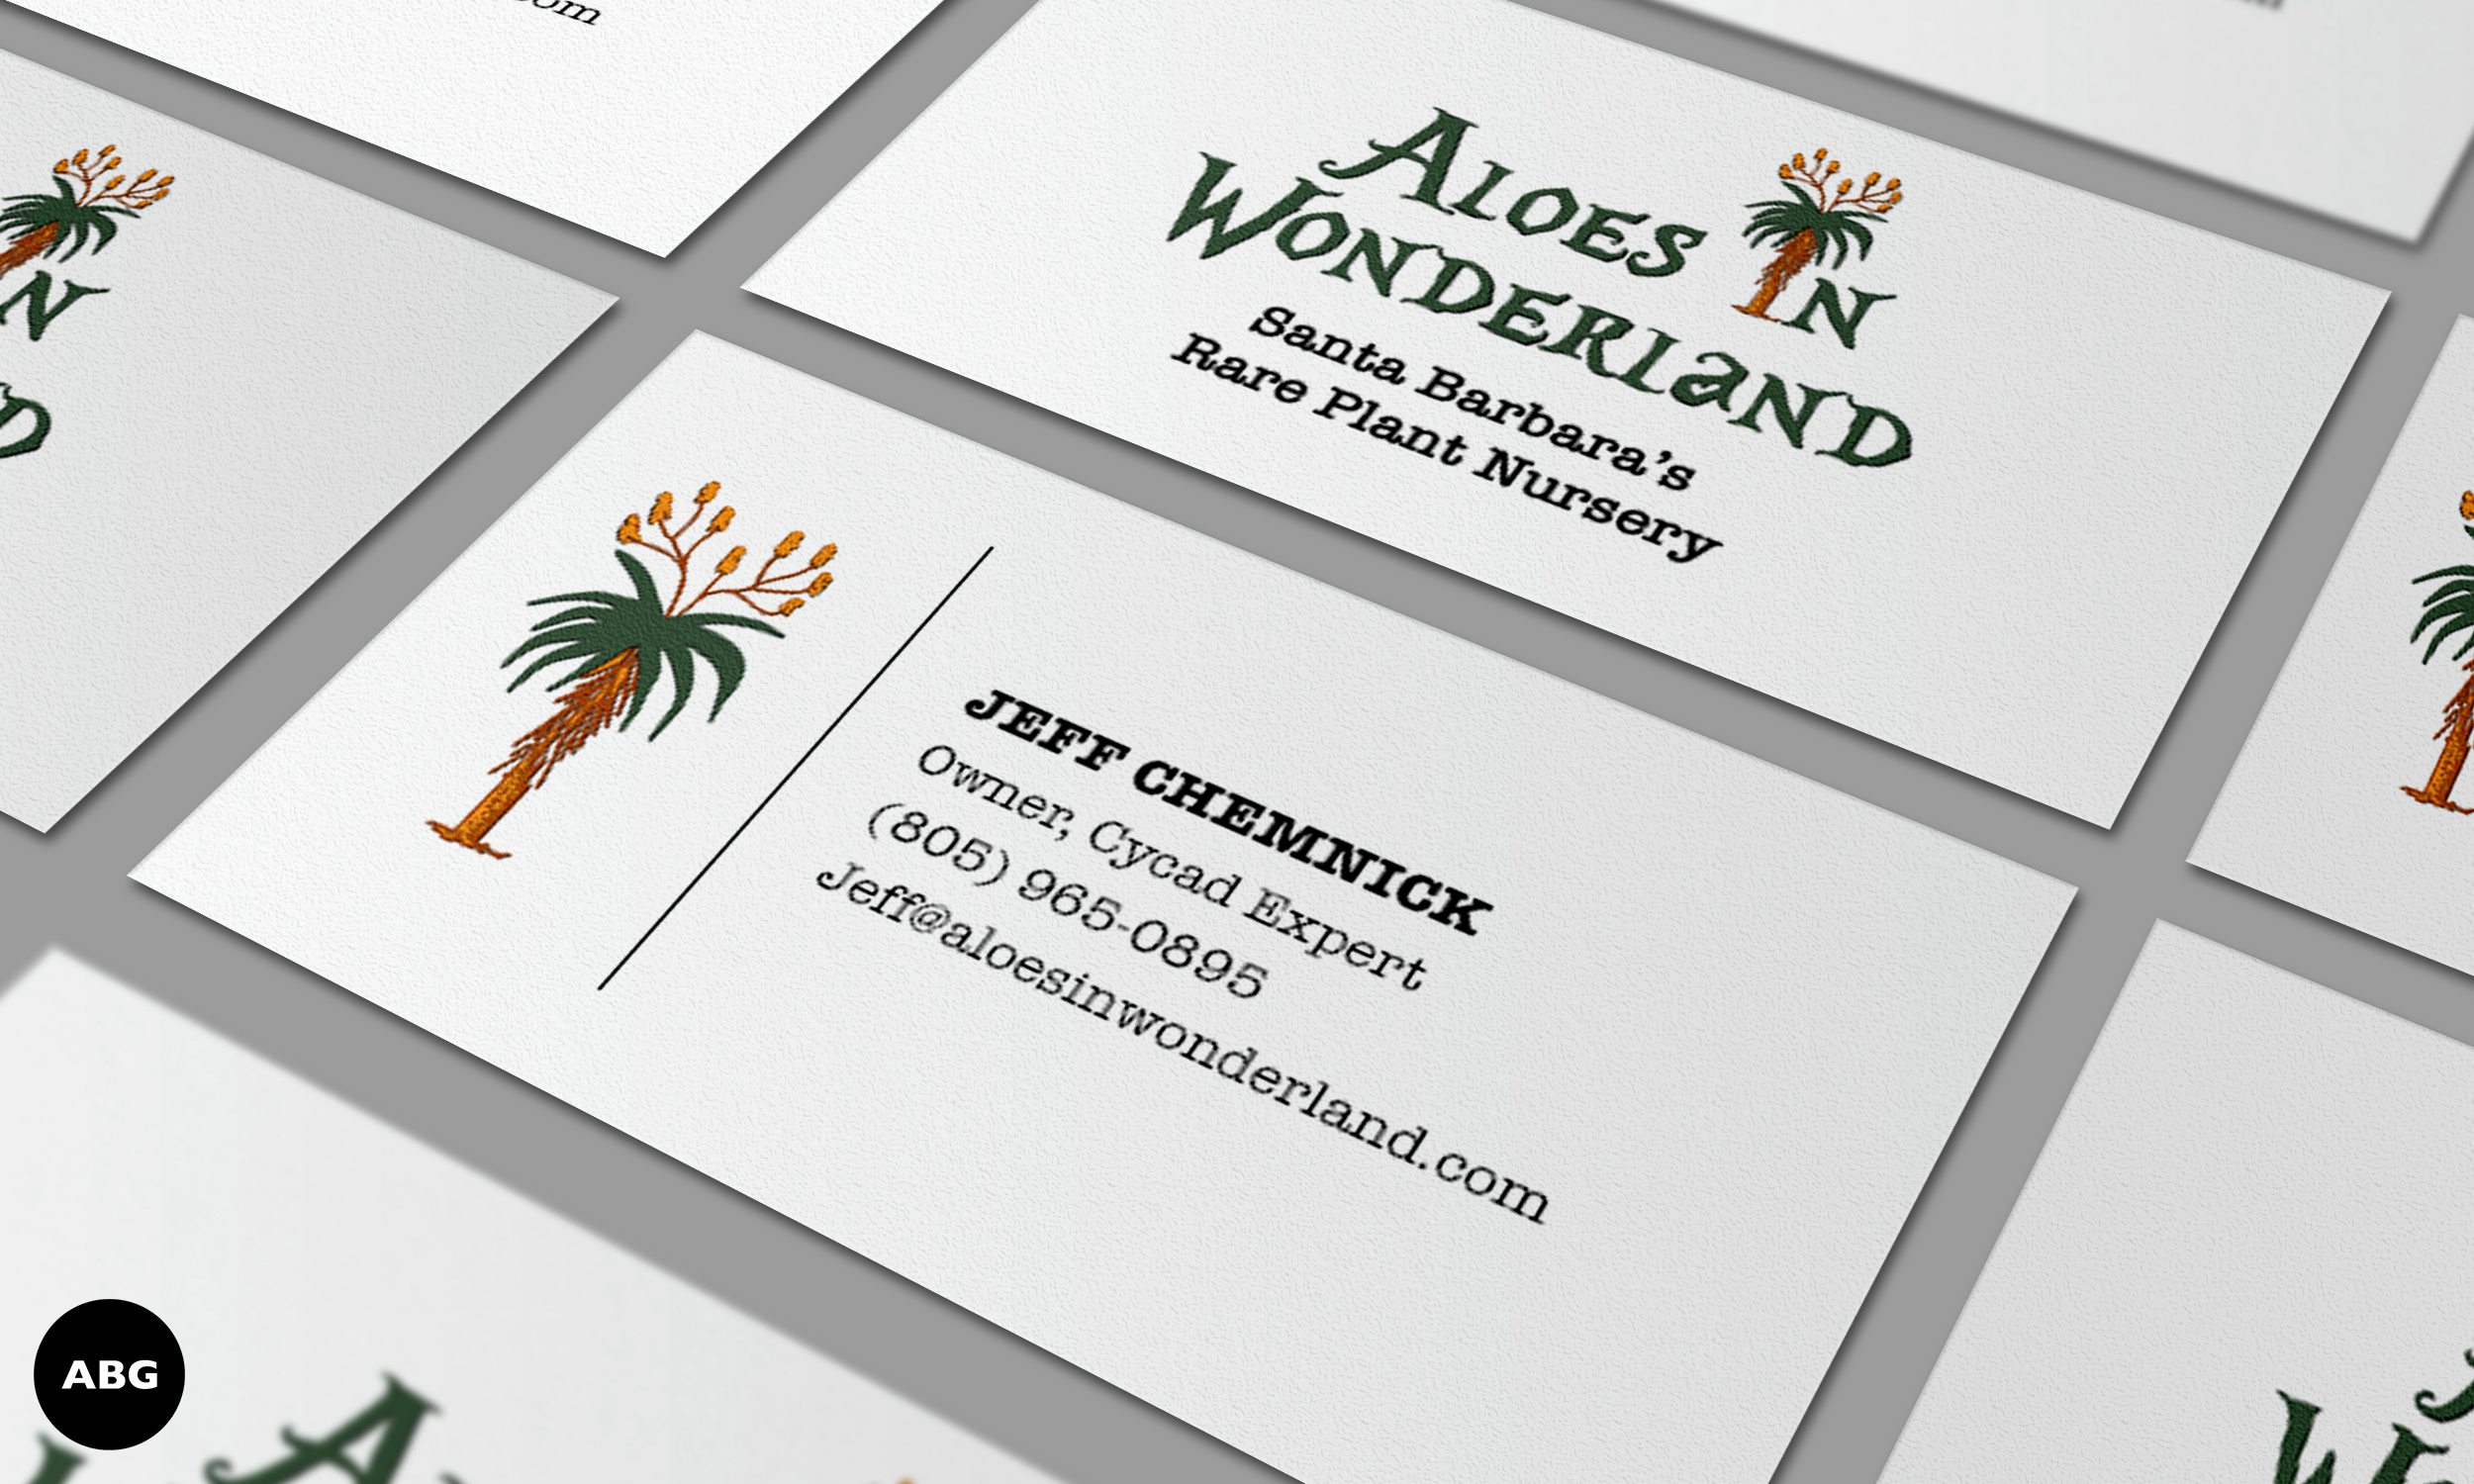 Aloes in Wonderland Business Cards by Al B. Goldin